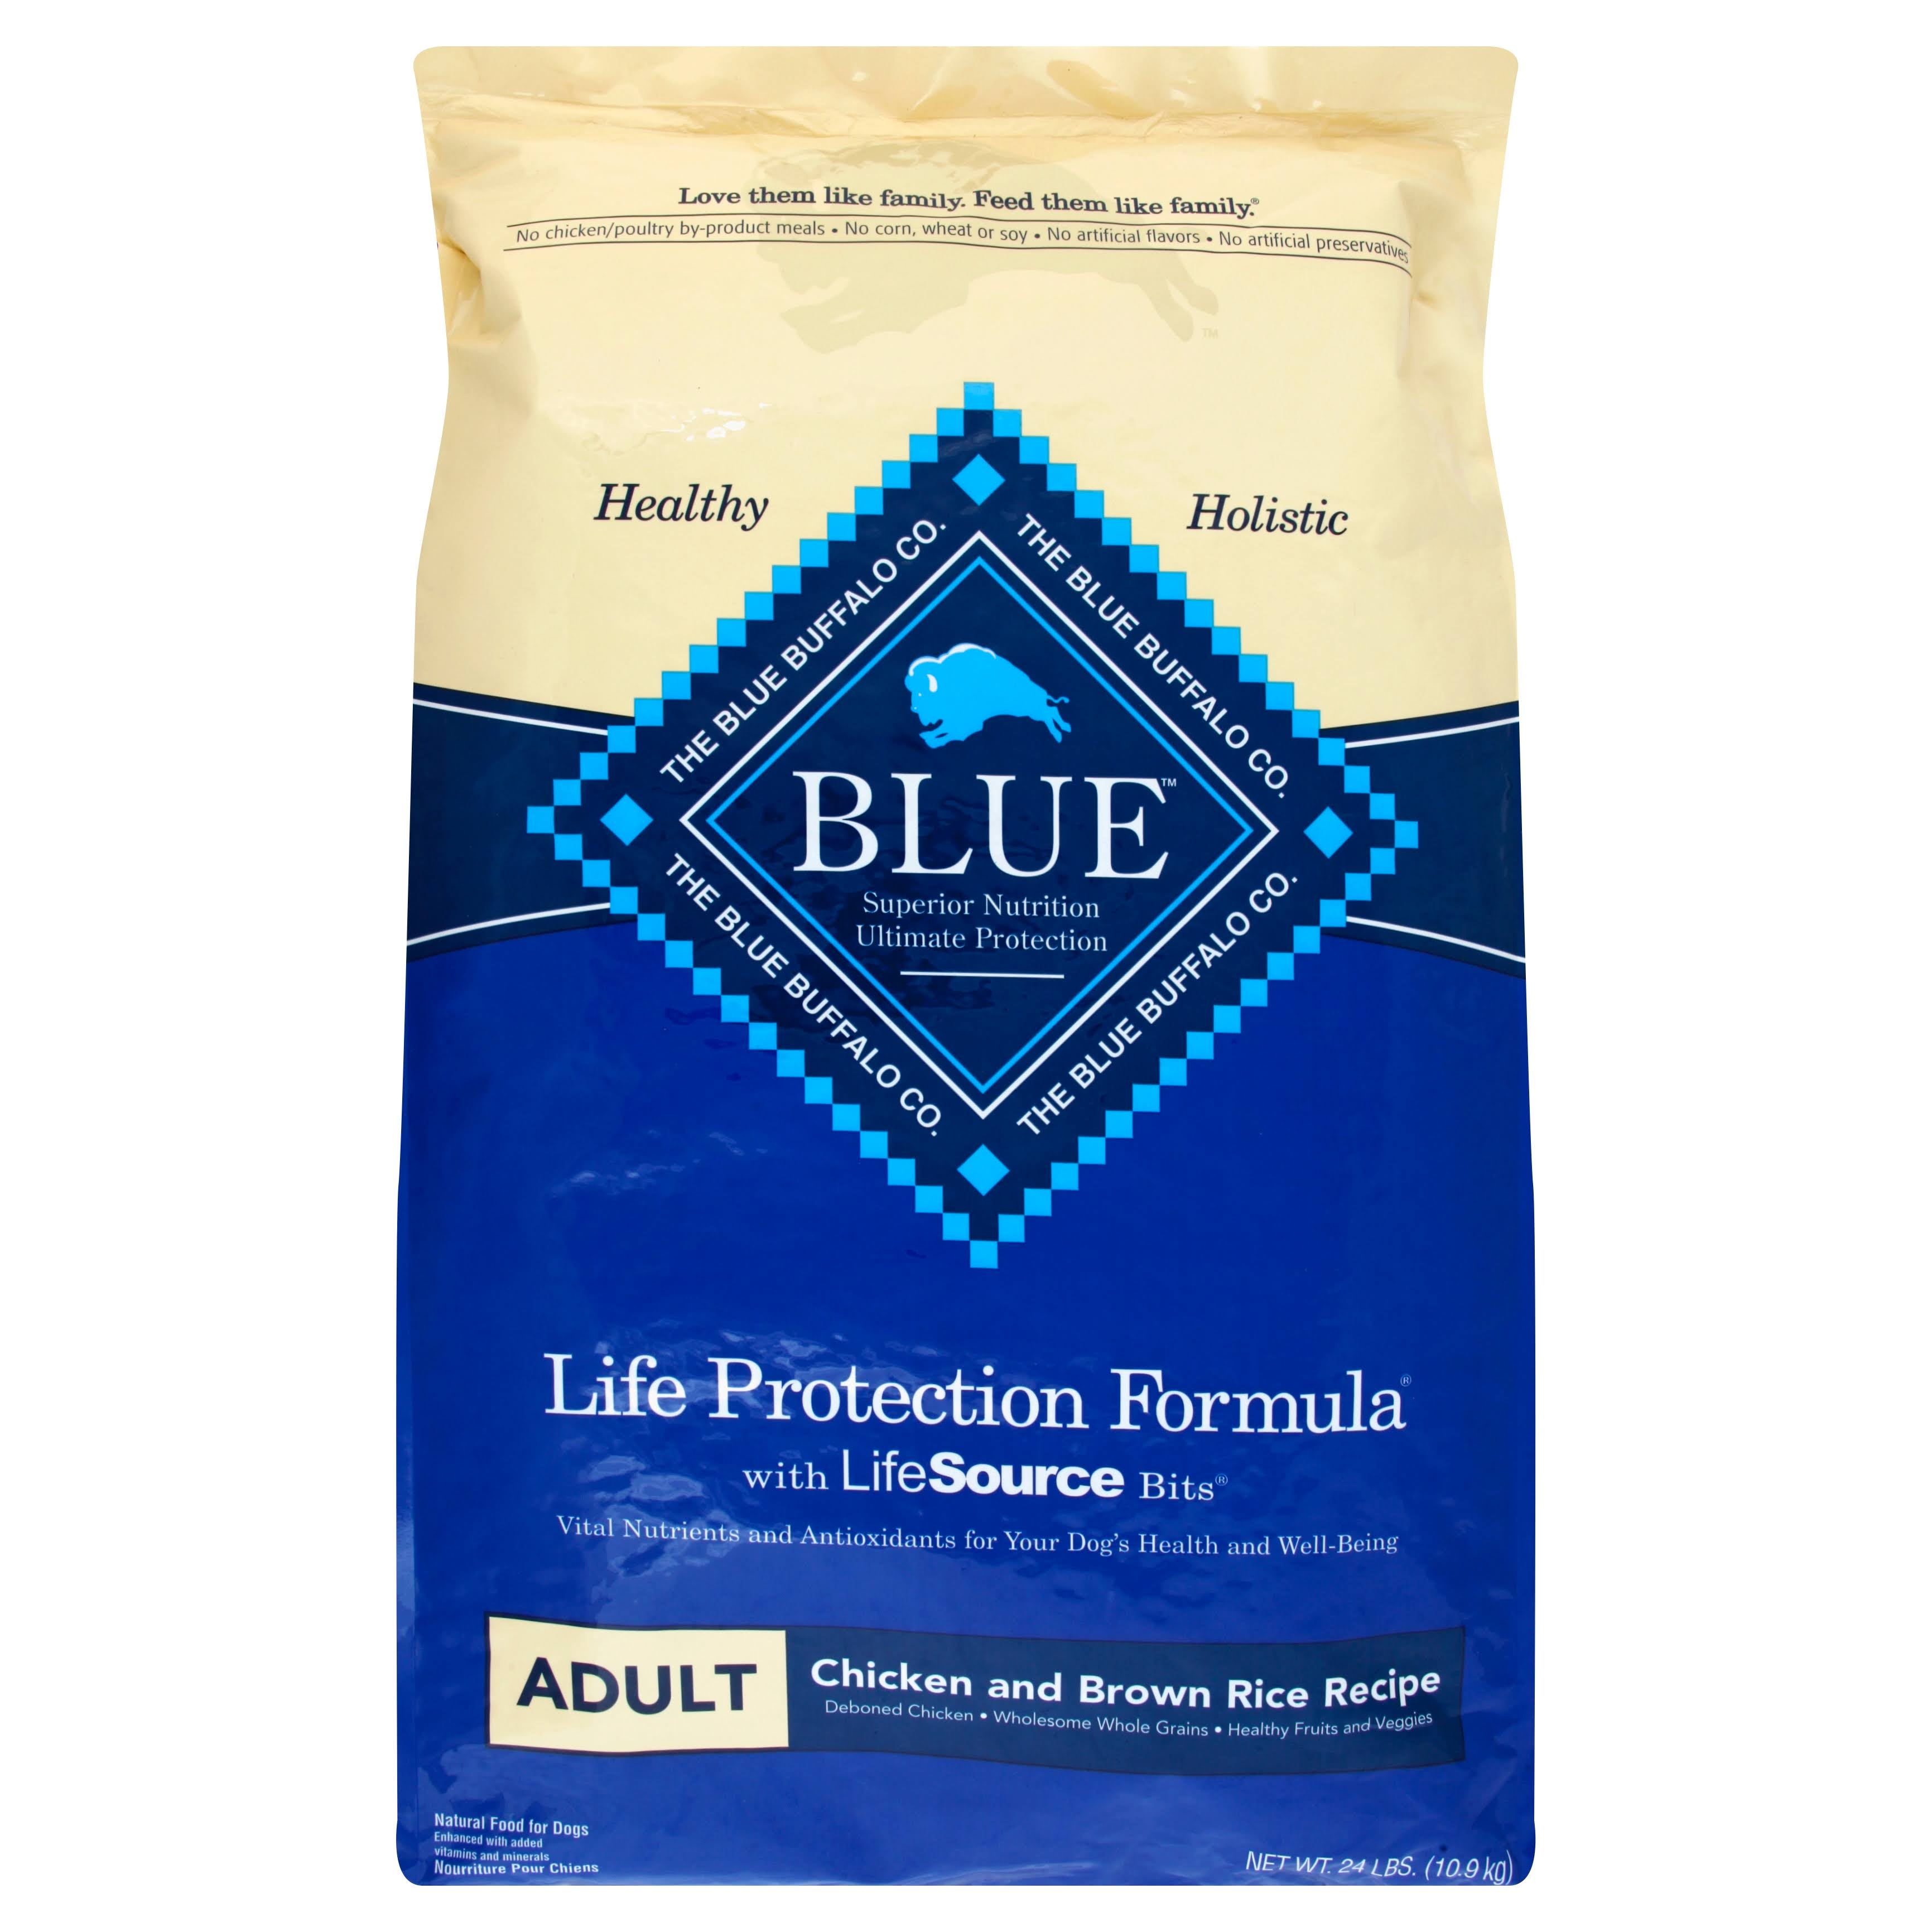 Blue Food for Dogs, Natural, Life Protection Formula, Chicken and Brown Rice Recipe, Adult - 24 lbs (10.9 kg)